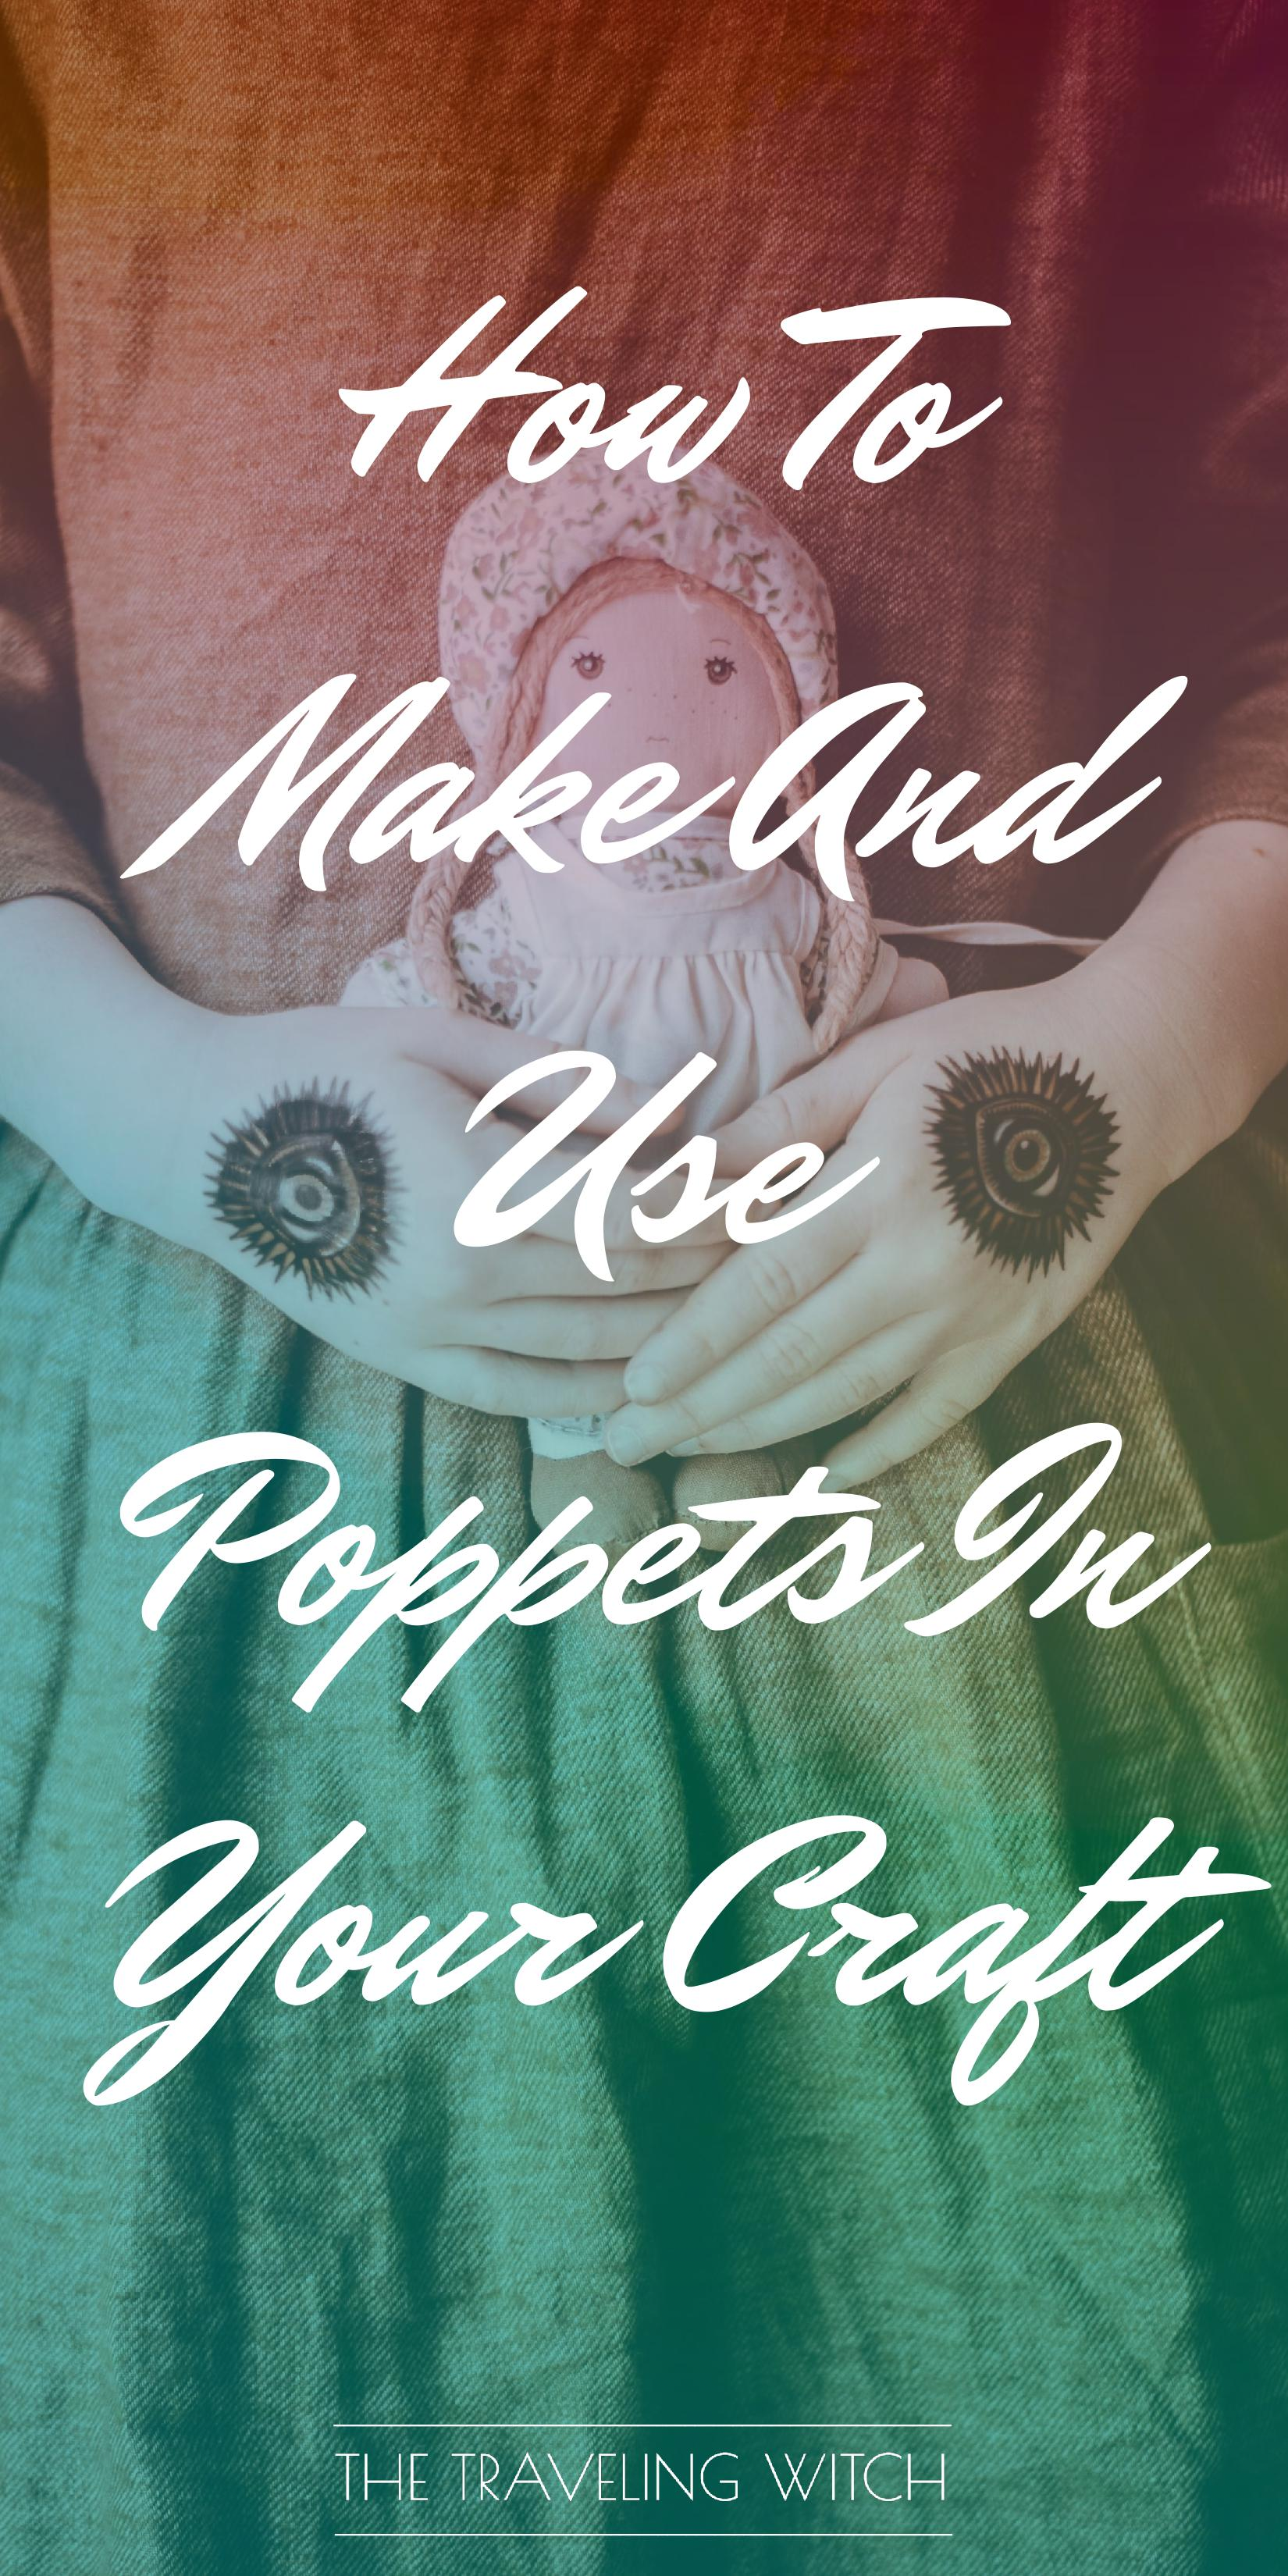 How To Make And Use Poppets In Your Craft // Witchcraft // Magic // The Traveling Witch